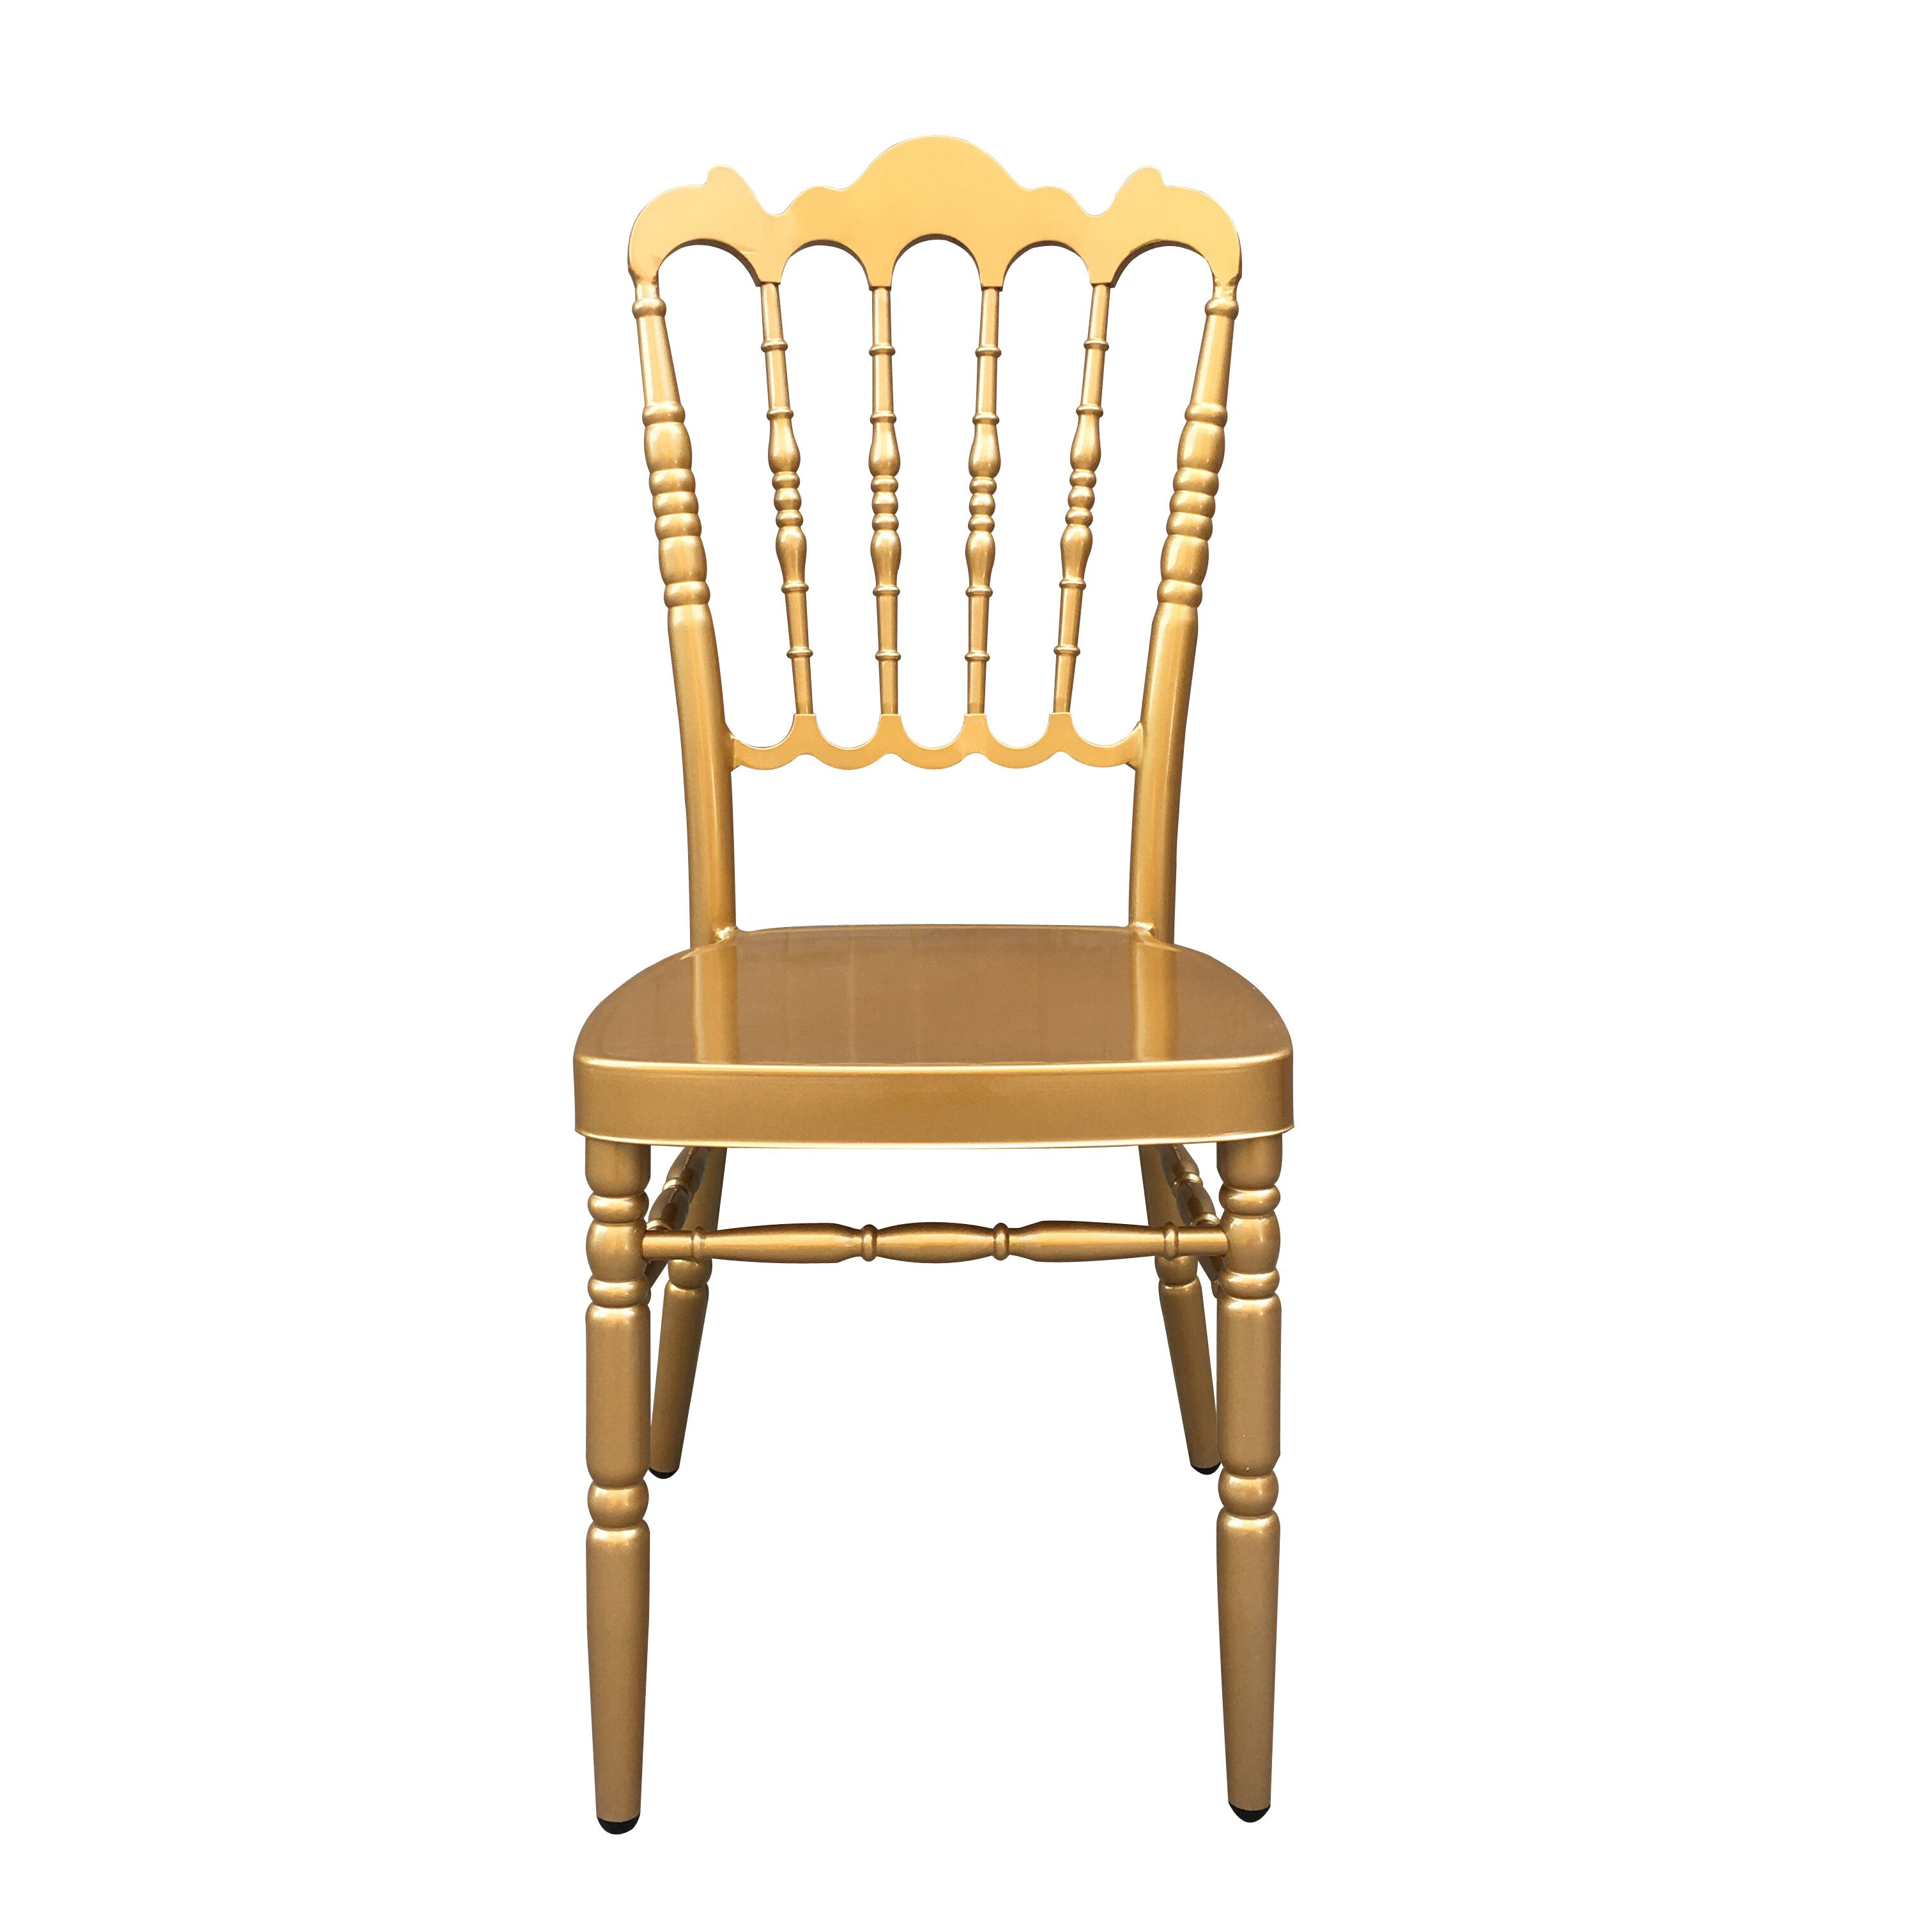 Manufacturing Companies for Banquet Chair Rental -